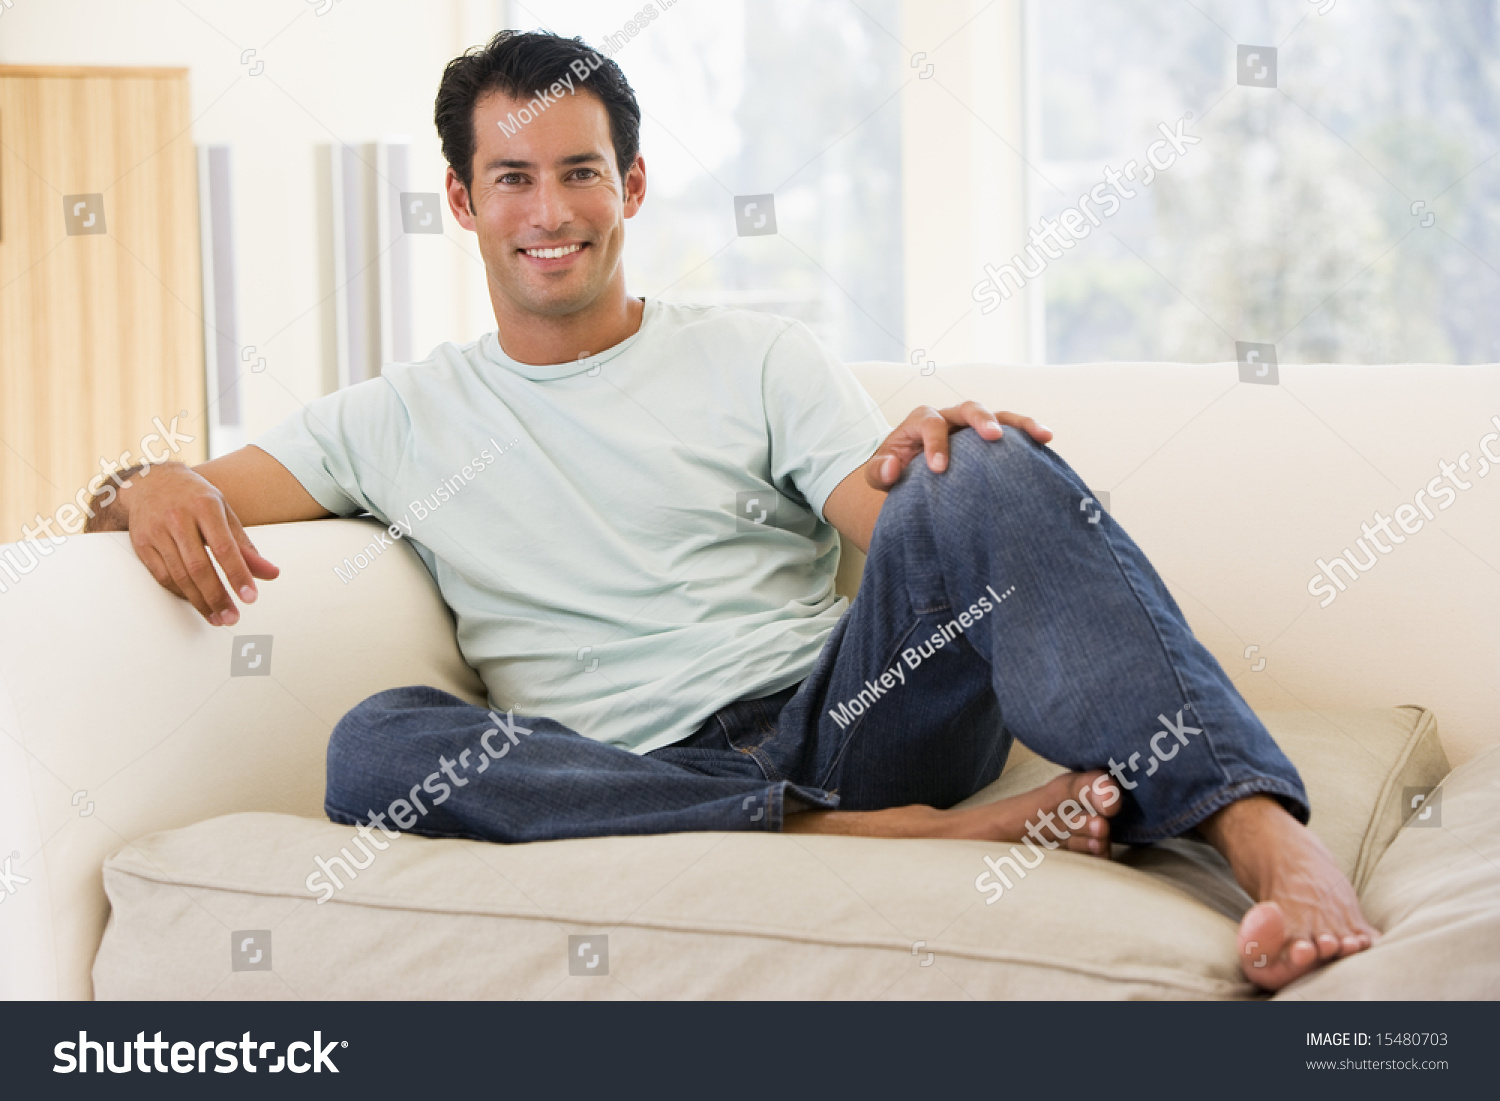 Man Living Room Man Sitting Living Room Smiling Stock Photo 15480703 Shutterstock